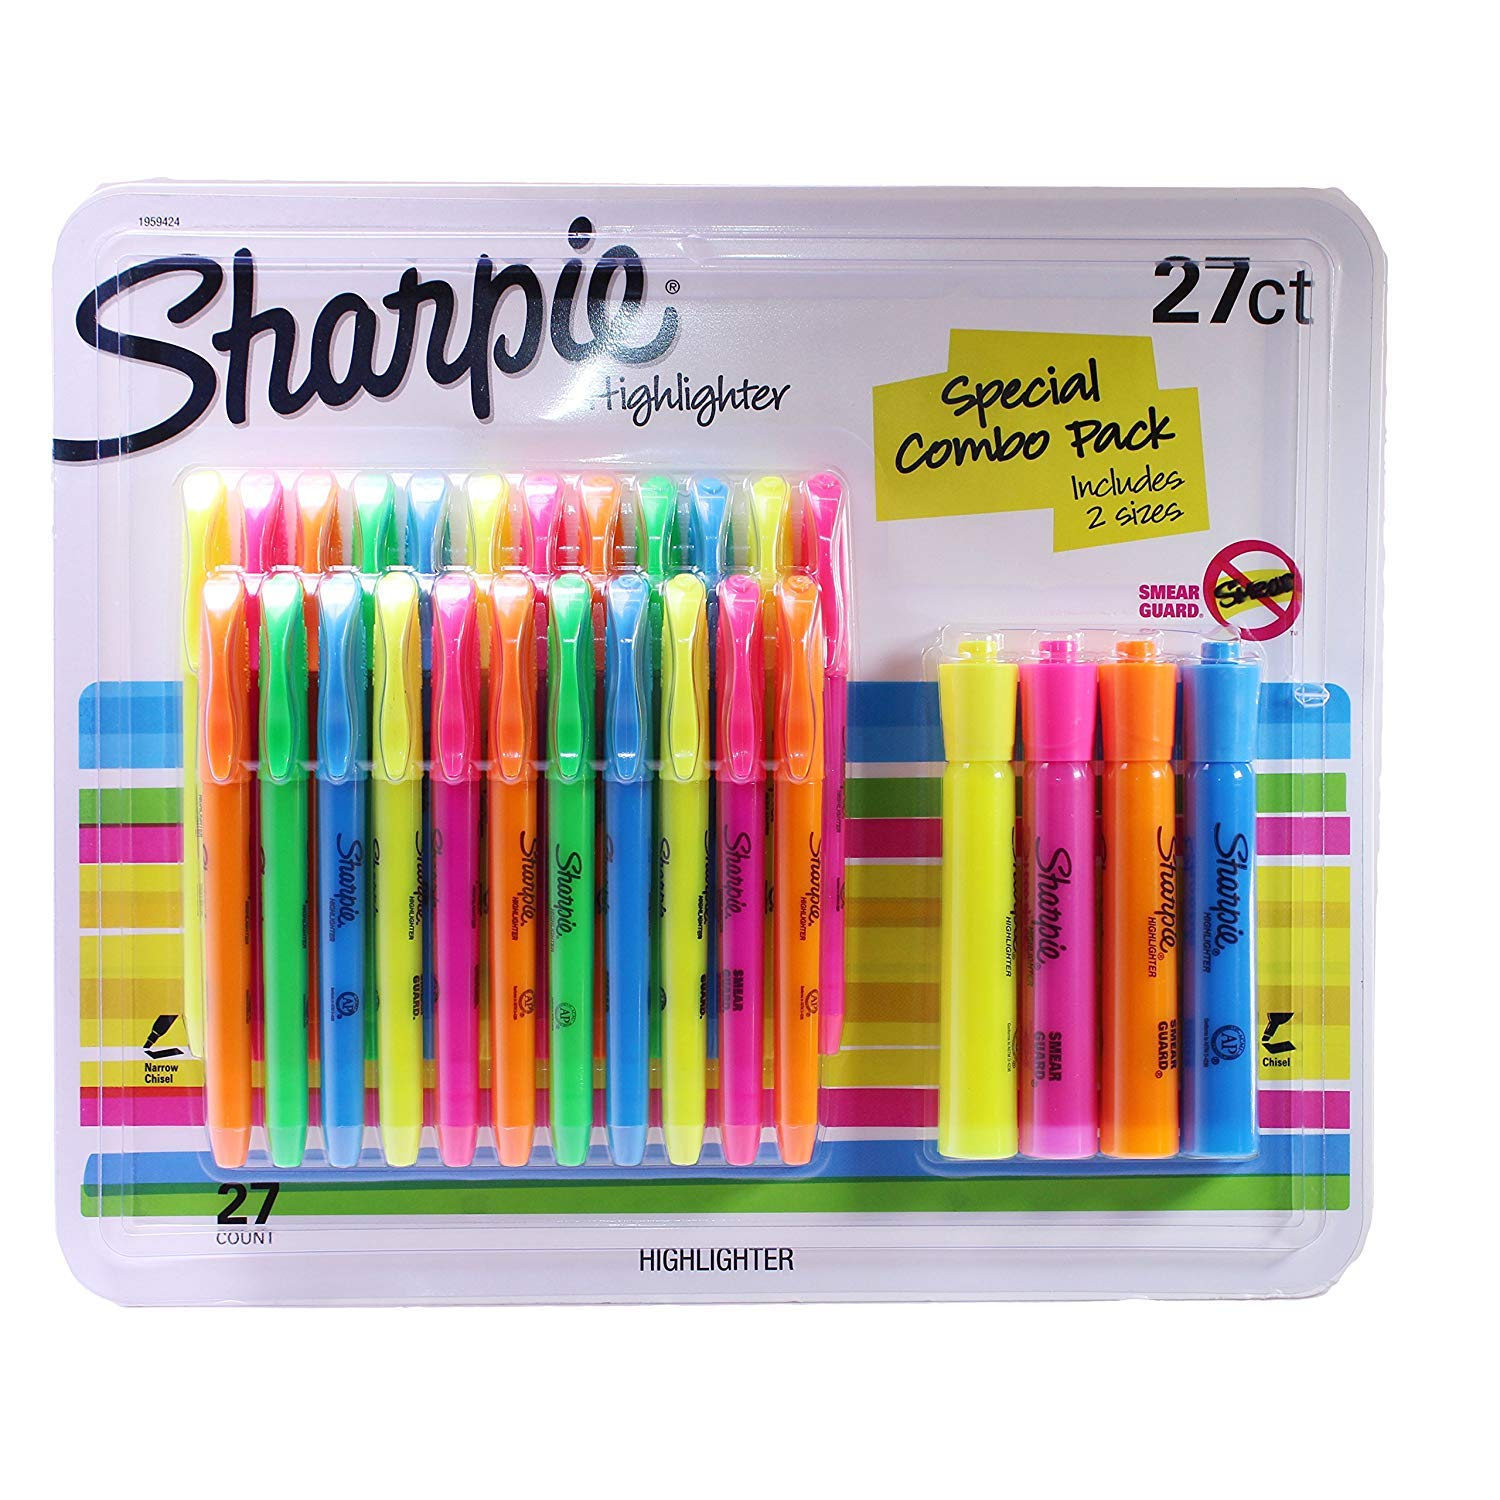 Sharpie Highlighters Assorted Colors, Includes 2 Sizes (27) by SHARPIE